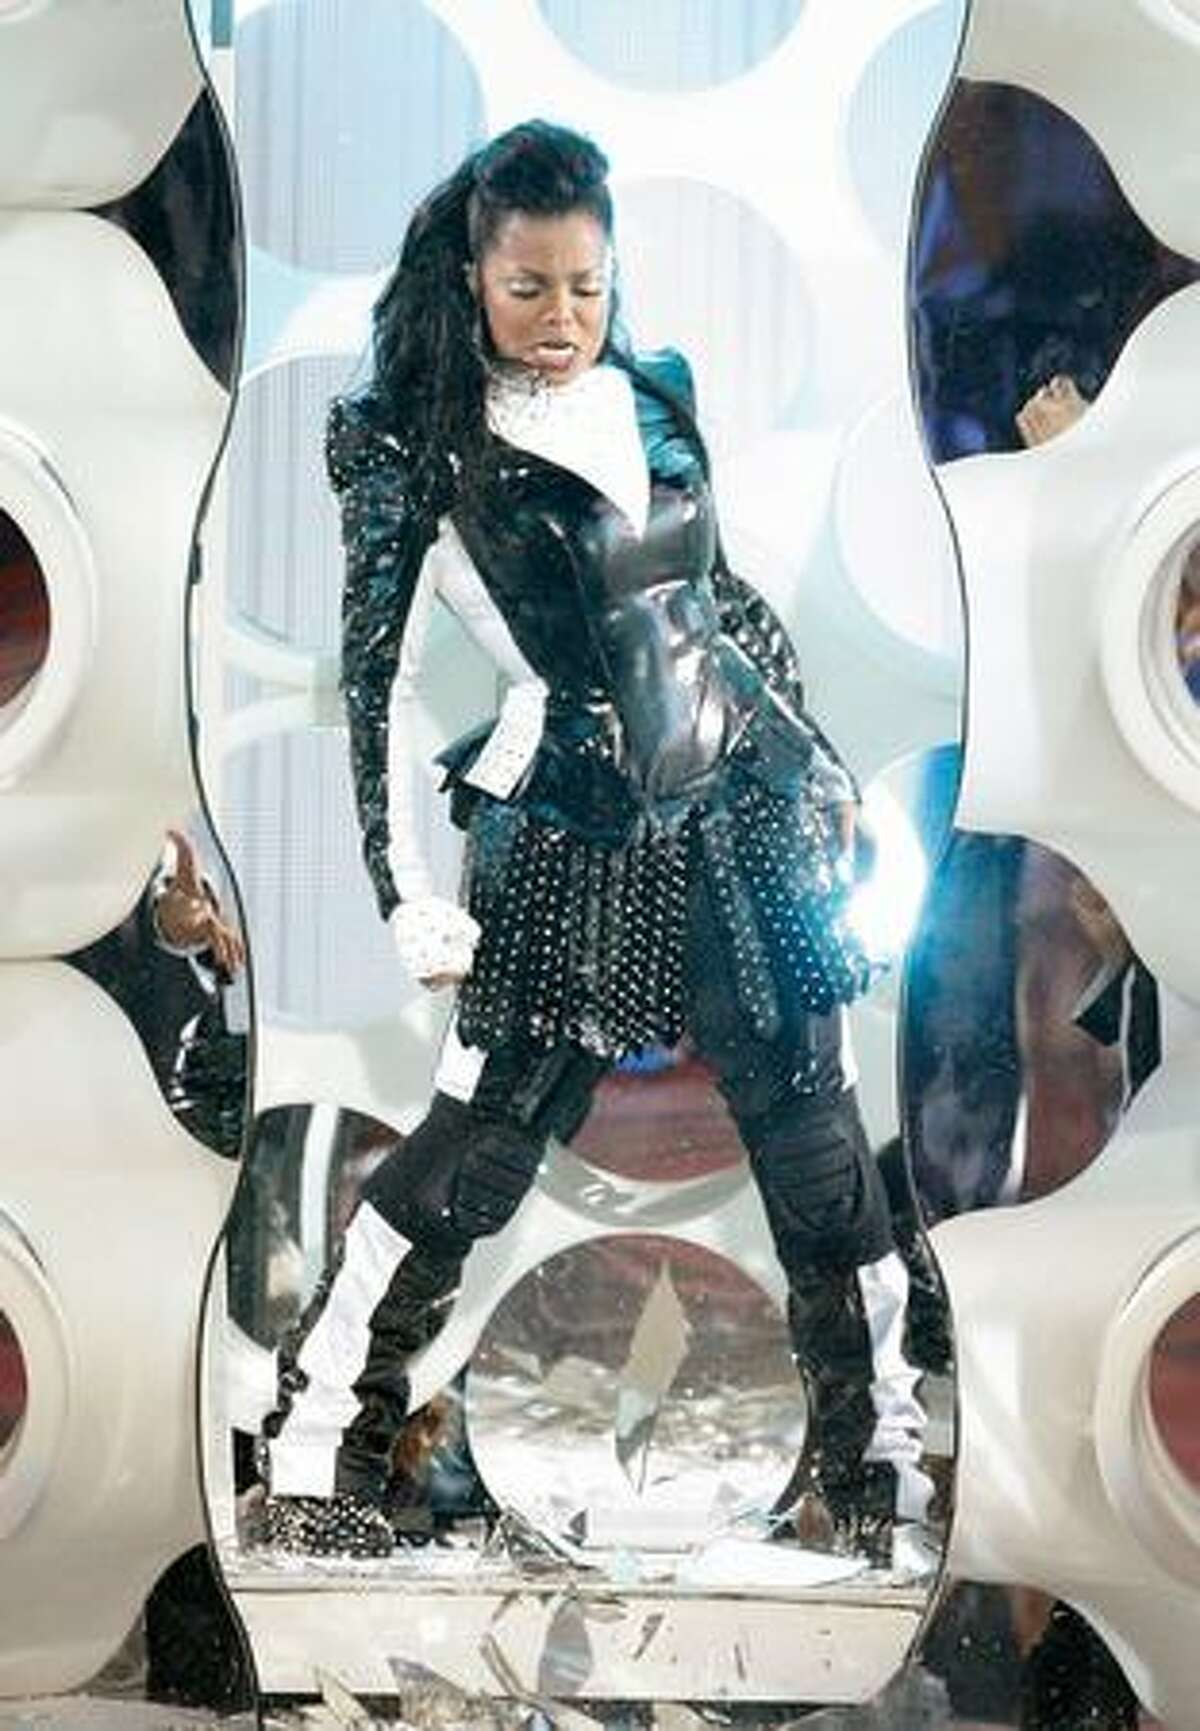 Singer Janet Jackson performs during the 2009 MTV Video Music Awards at Radio City Music Hall in New York on Sunday.